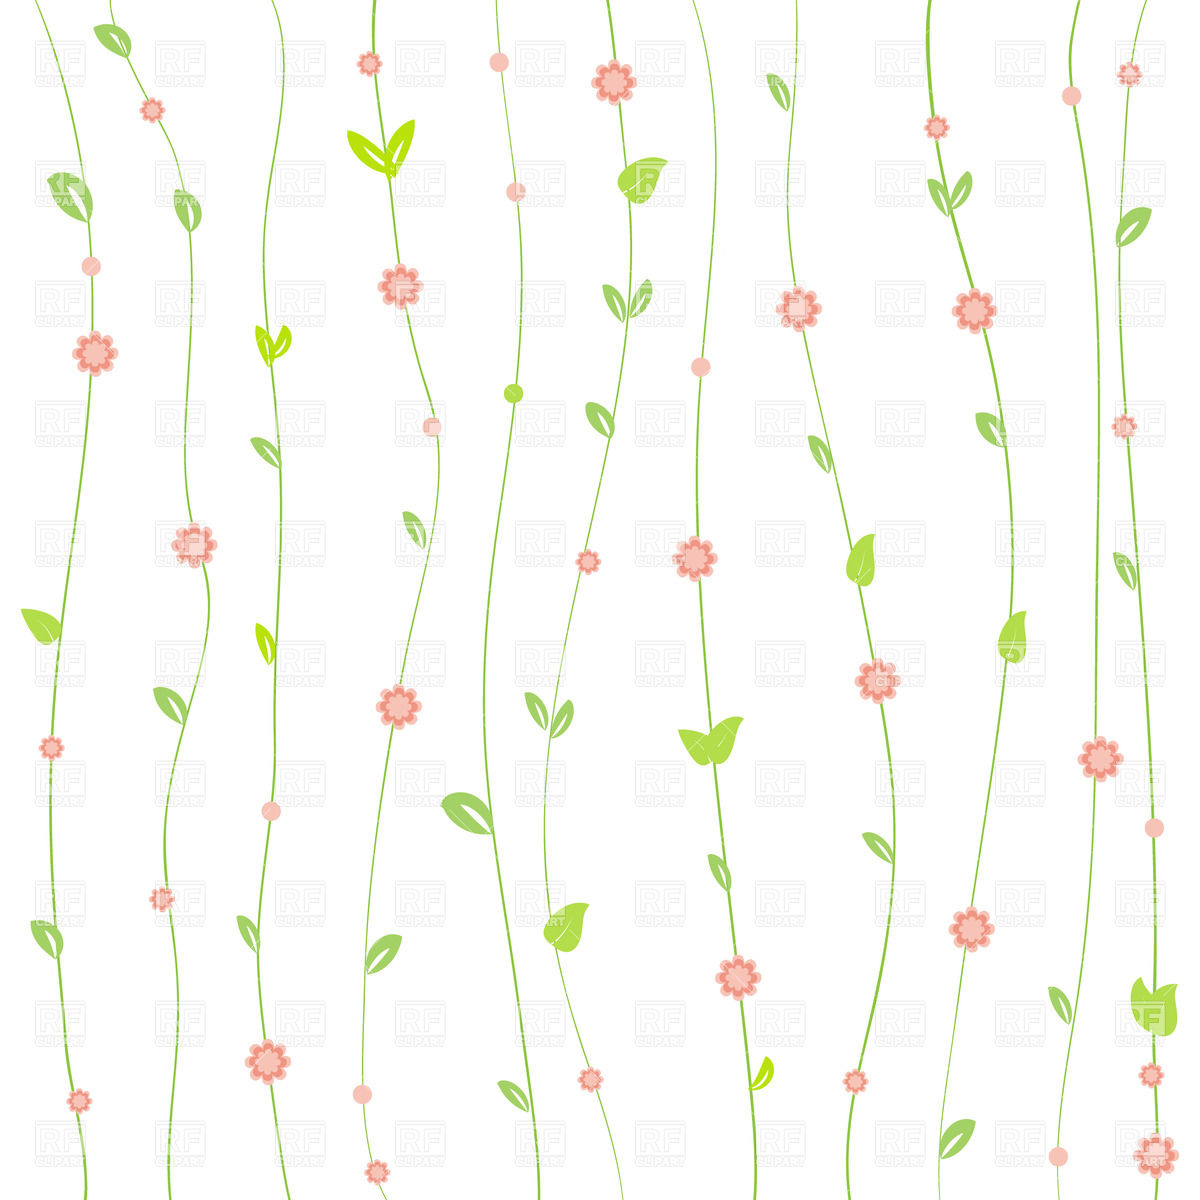 103 free background clipart